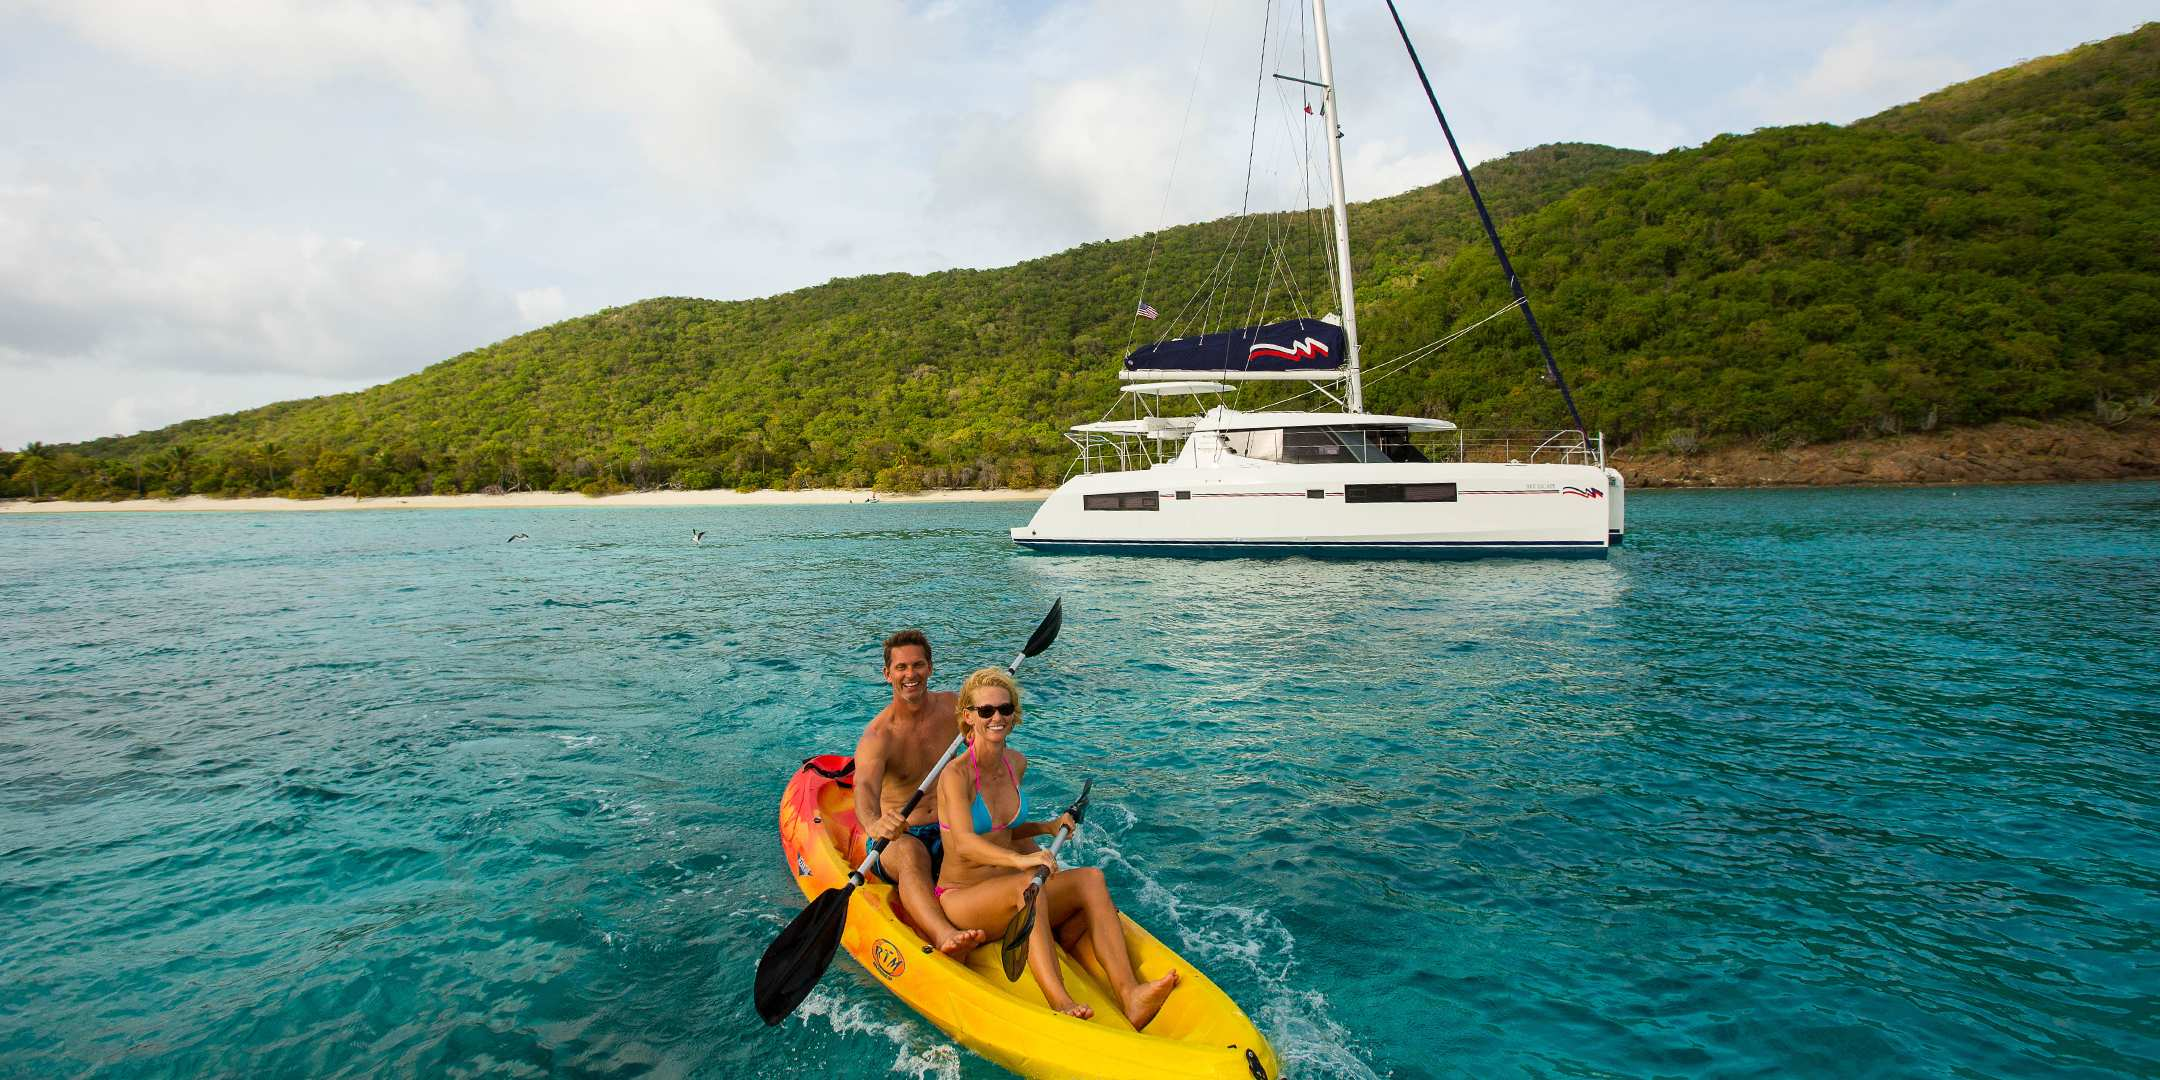 us_tm_1603_0318_blog-best-summer-vacation-spots_bvi.jpg